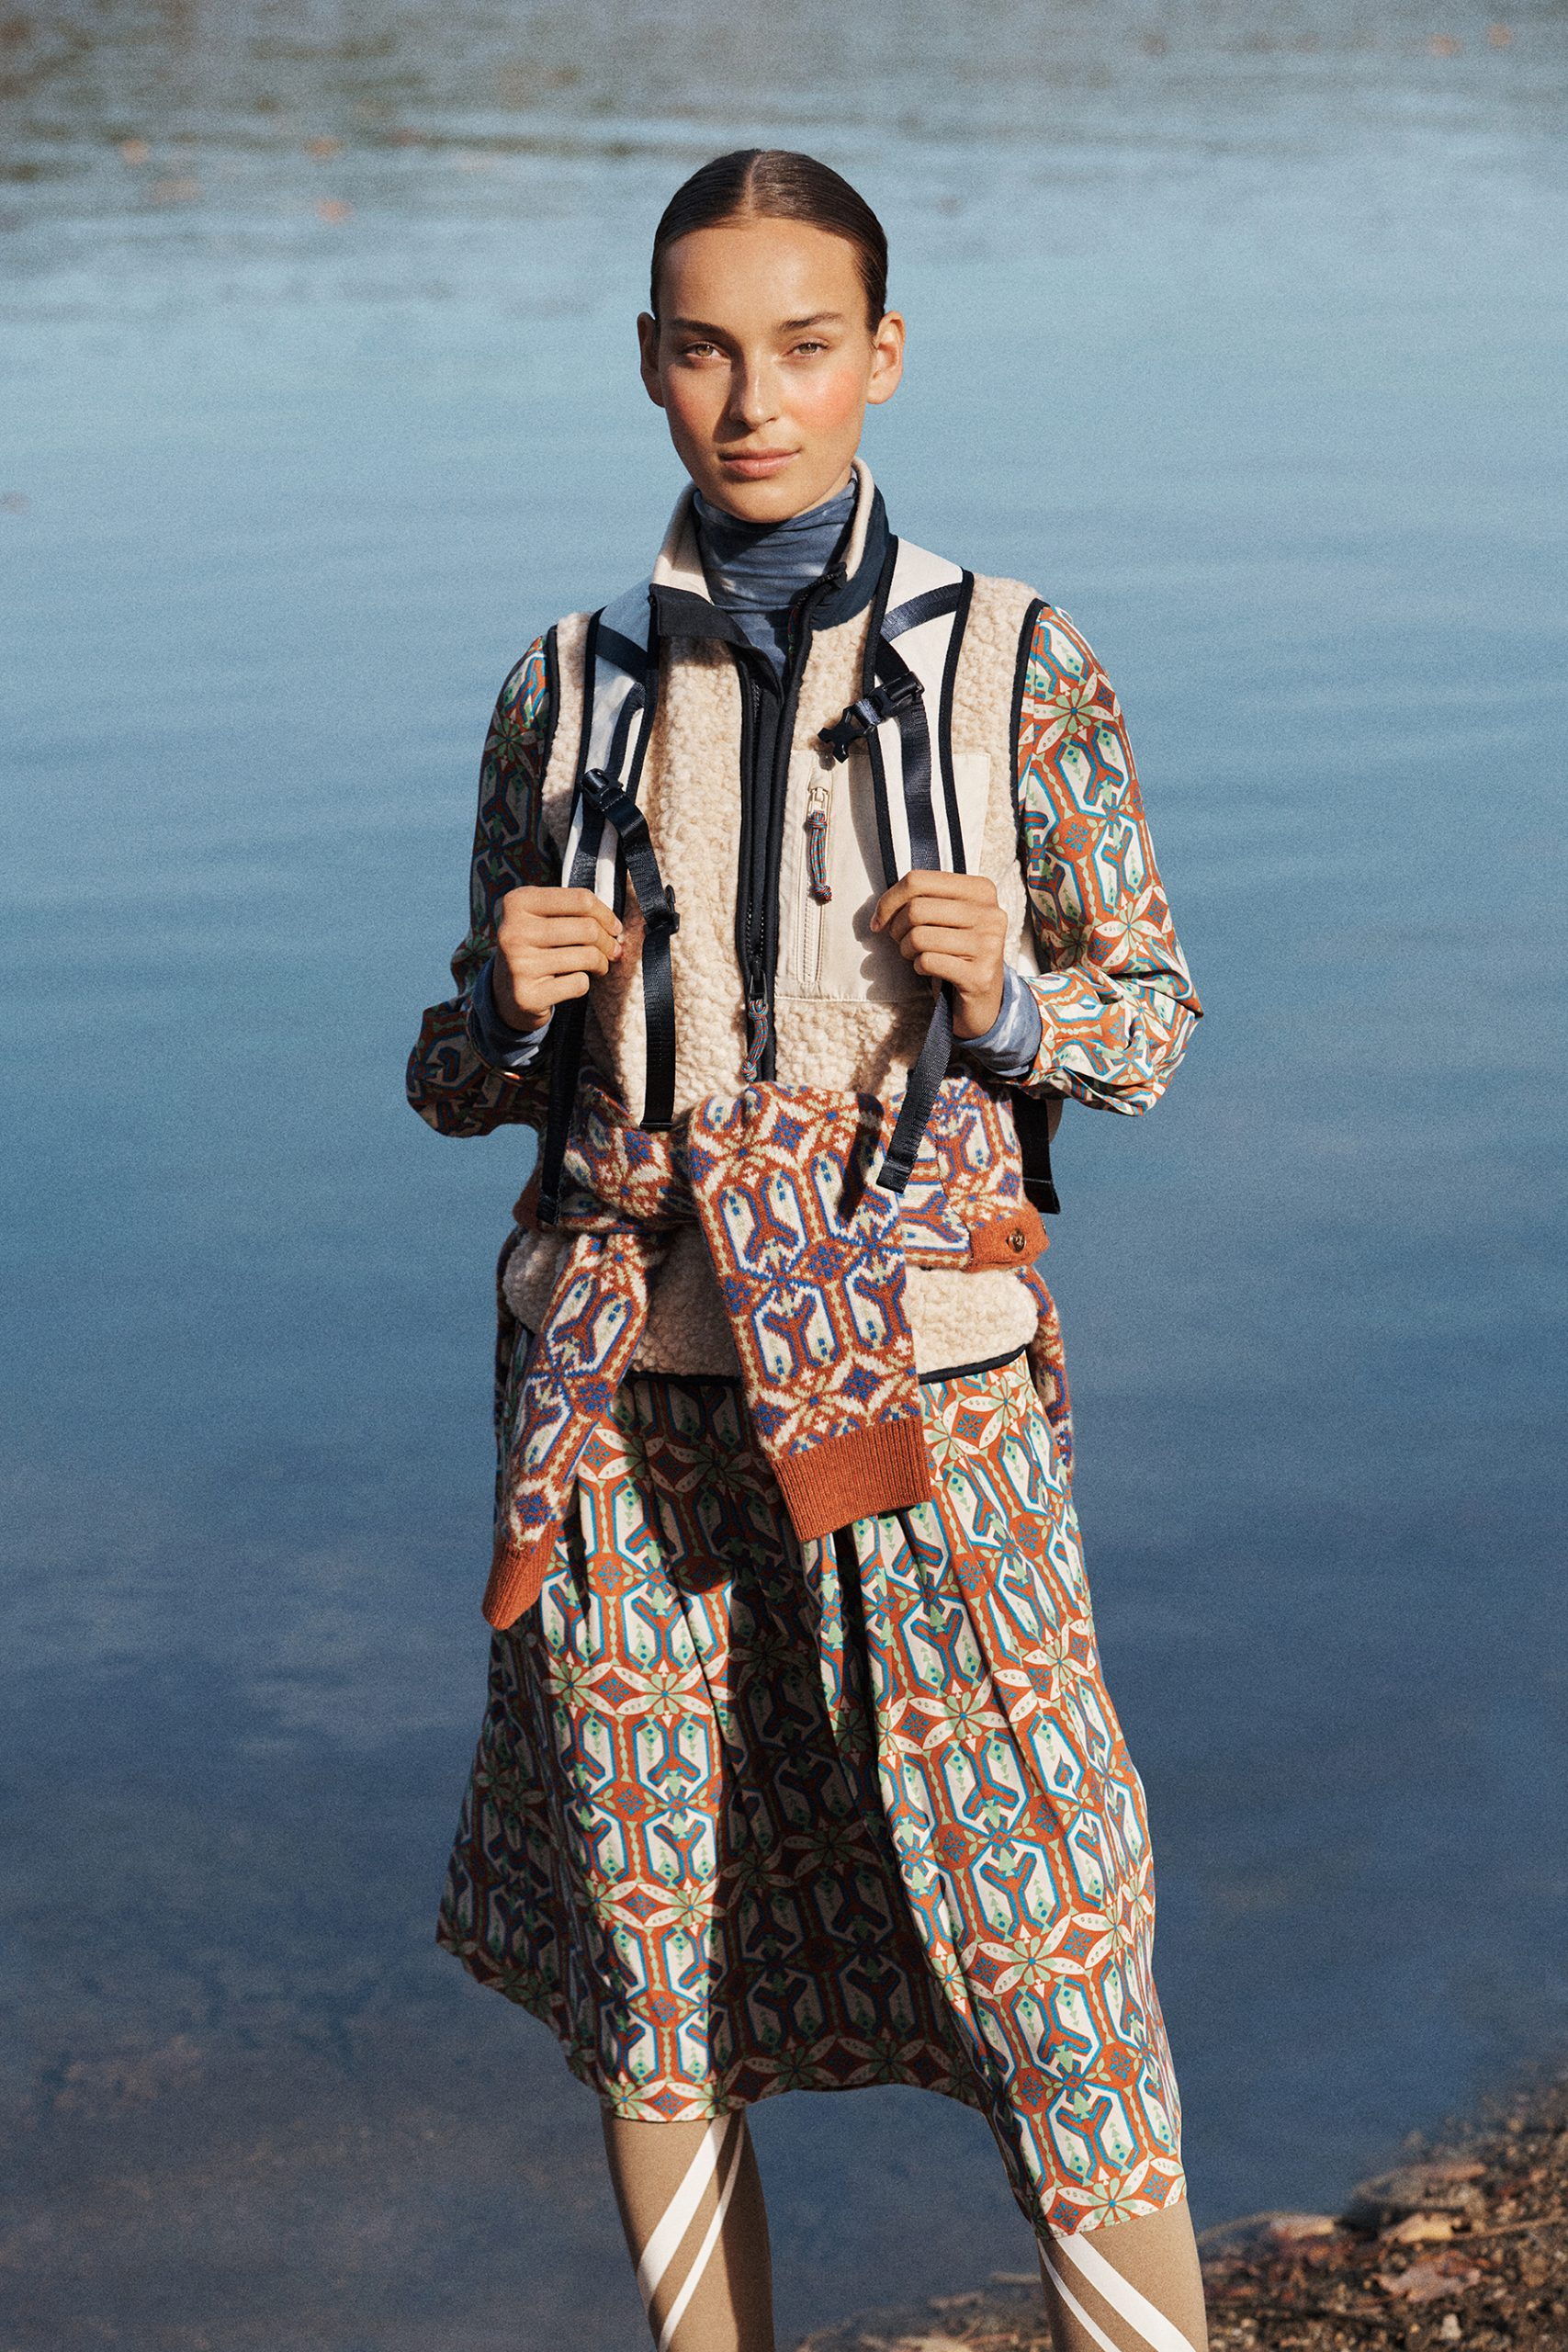 Tory Burch Spring 2021 Capsule Collection